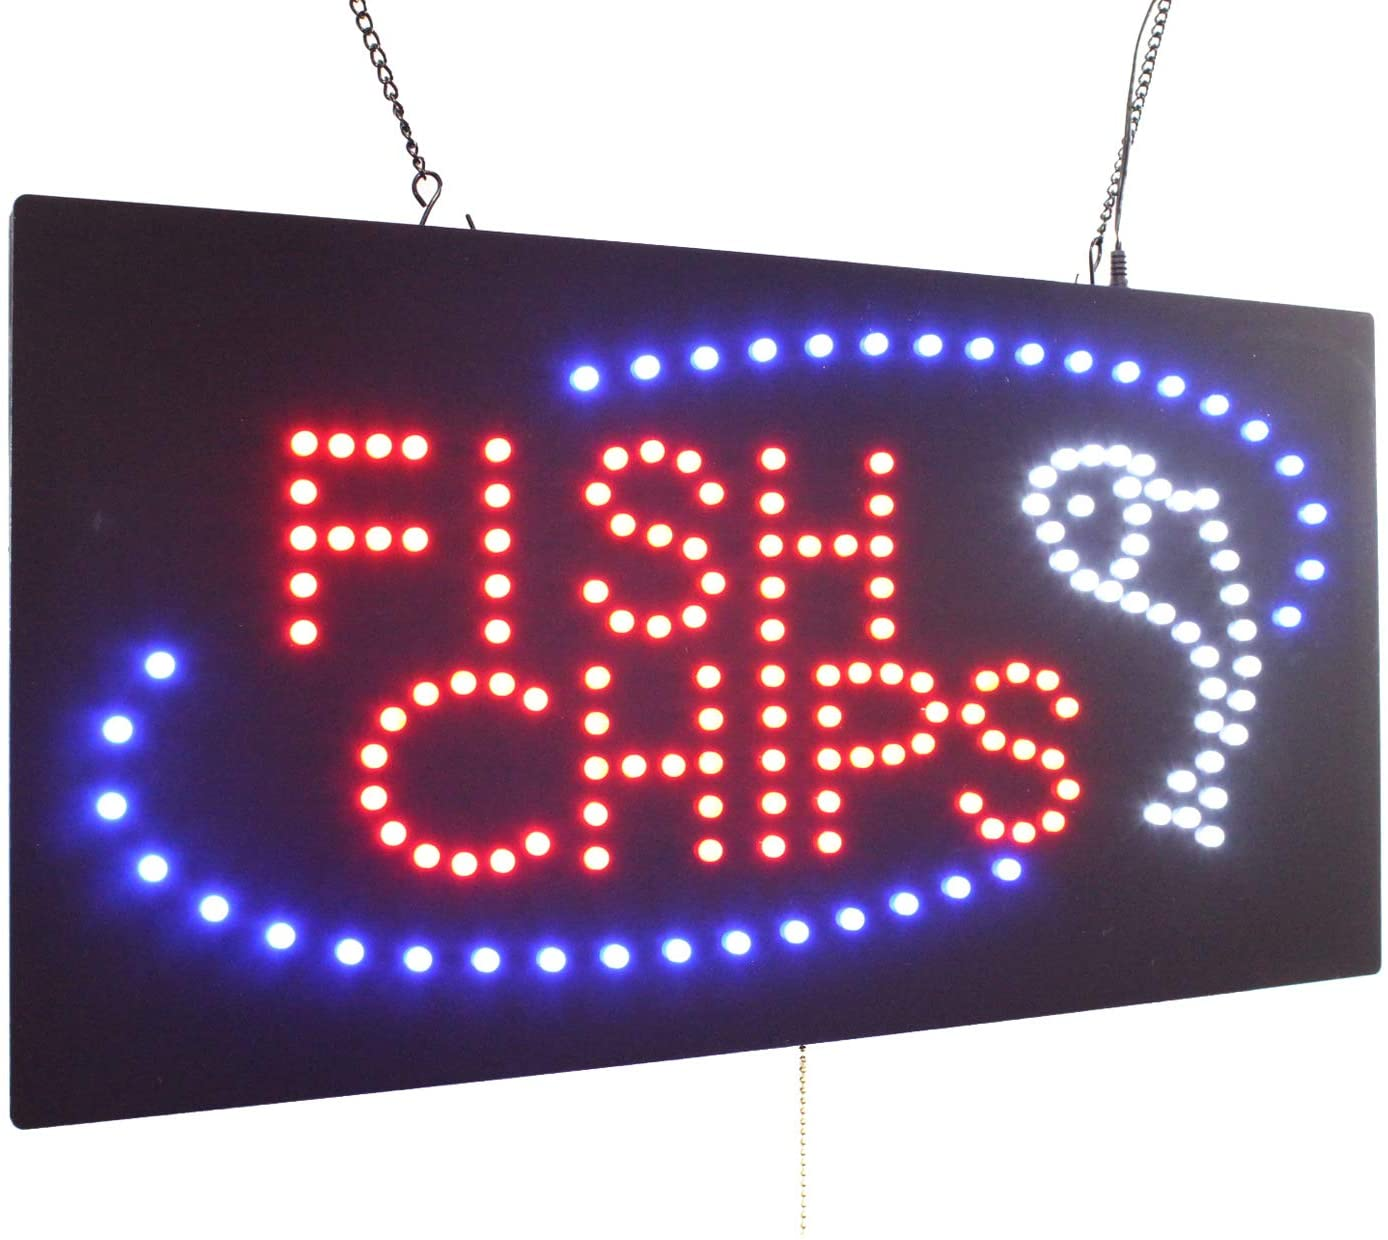 Fish and Chips Sign, TOPKING Signage, LED Neon Open, Store, Window, Shop, Business, Display, Grand Opening Gift